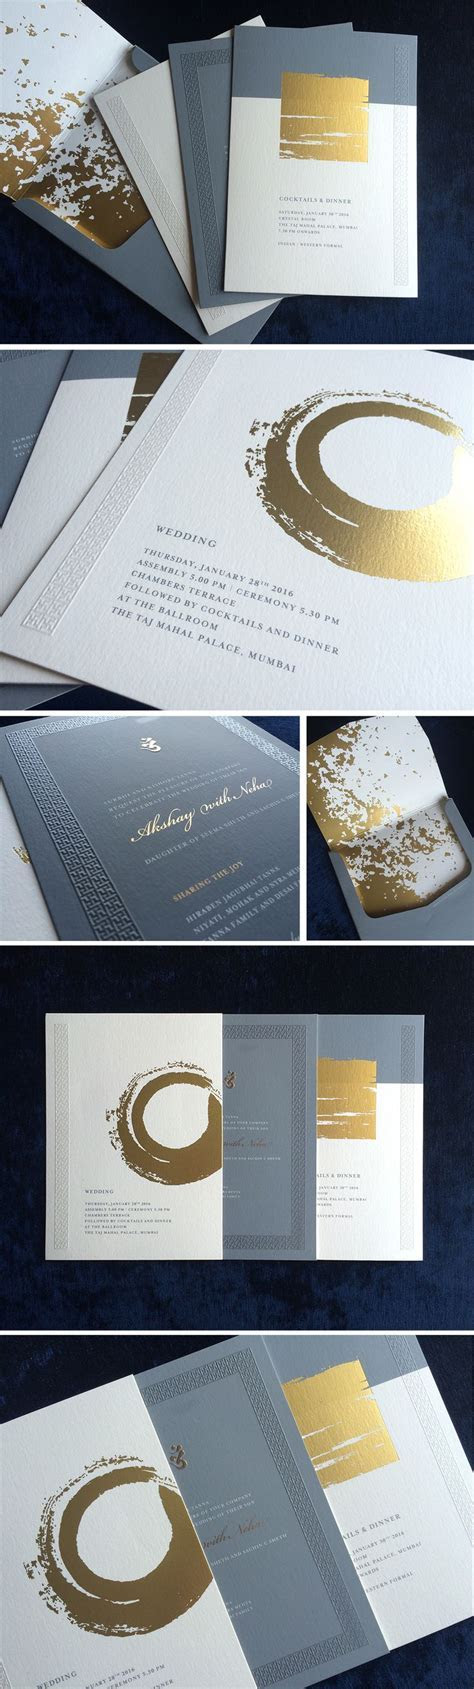 25  best ideas about Gold foil print on Pinterest   Gold